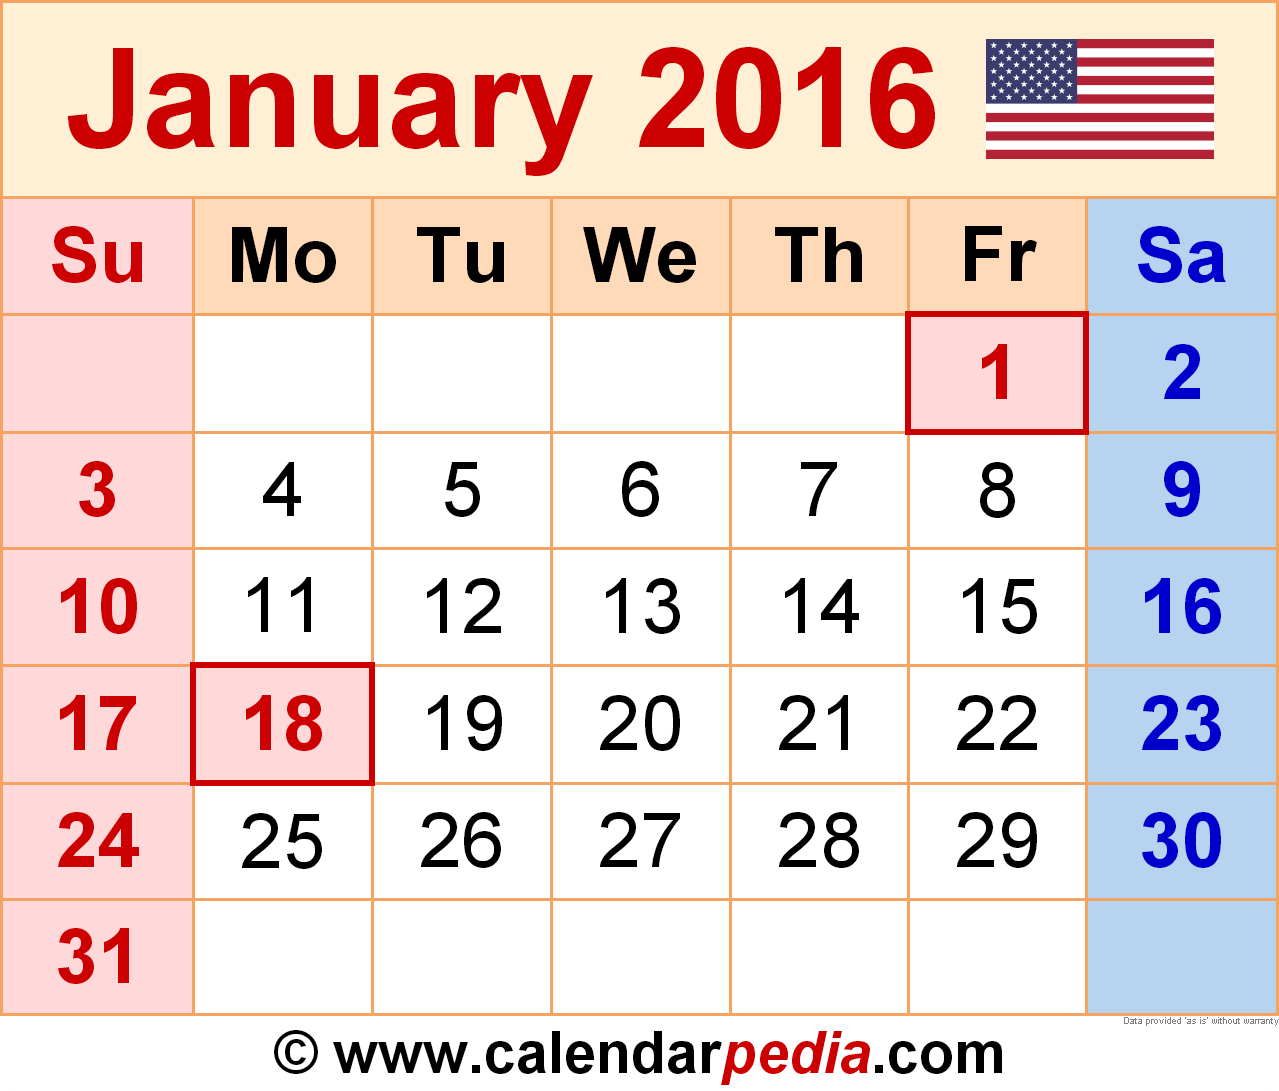 Calendar clipart january 2016 Calendar Download 2016  free